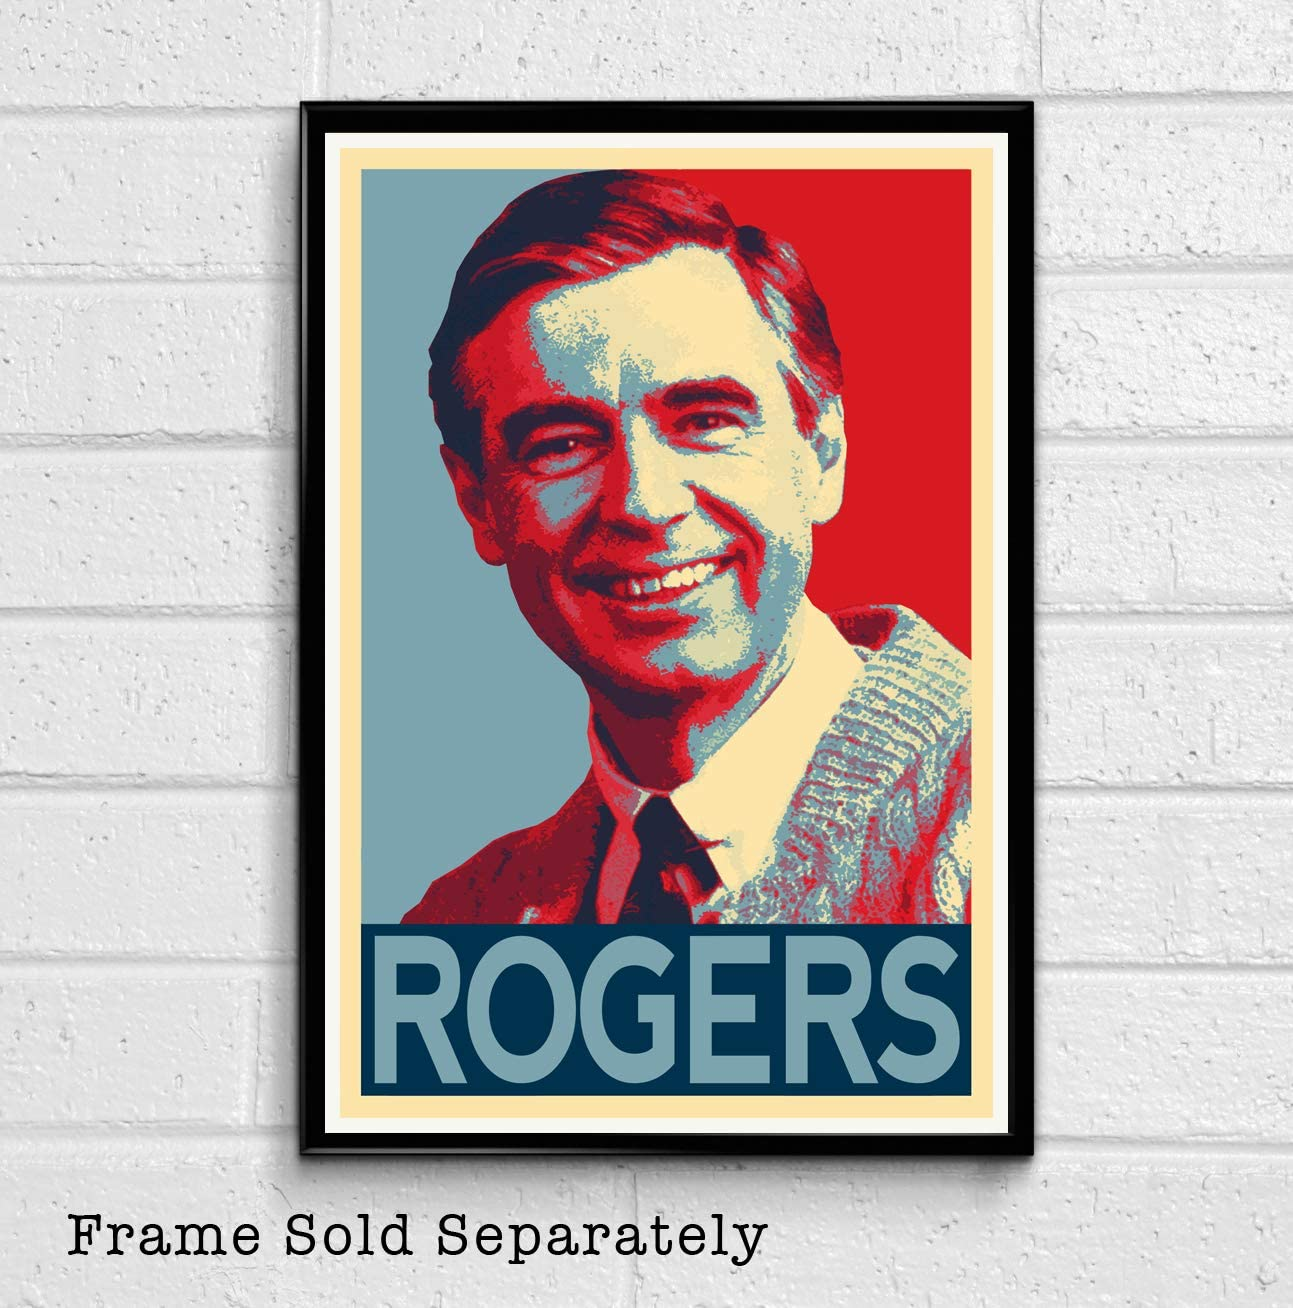 Amazon Com Nlopezart Mr Rogers Illustration Pbs Television Icon Fred Rogers Pop Art Home Decor Poster Print 11x17 Inches 11x17 Inches Posters Prints